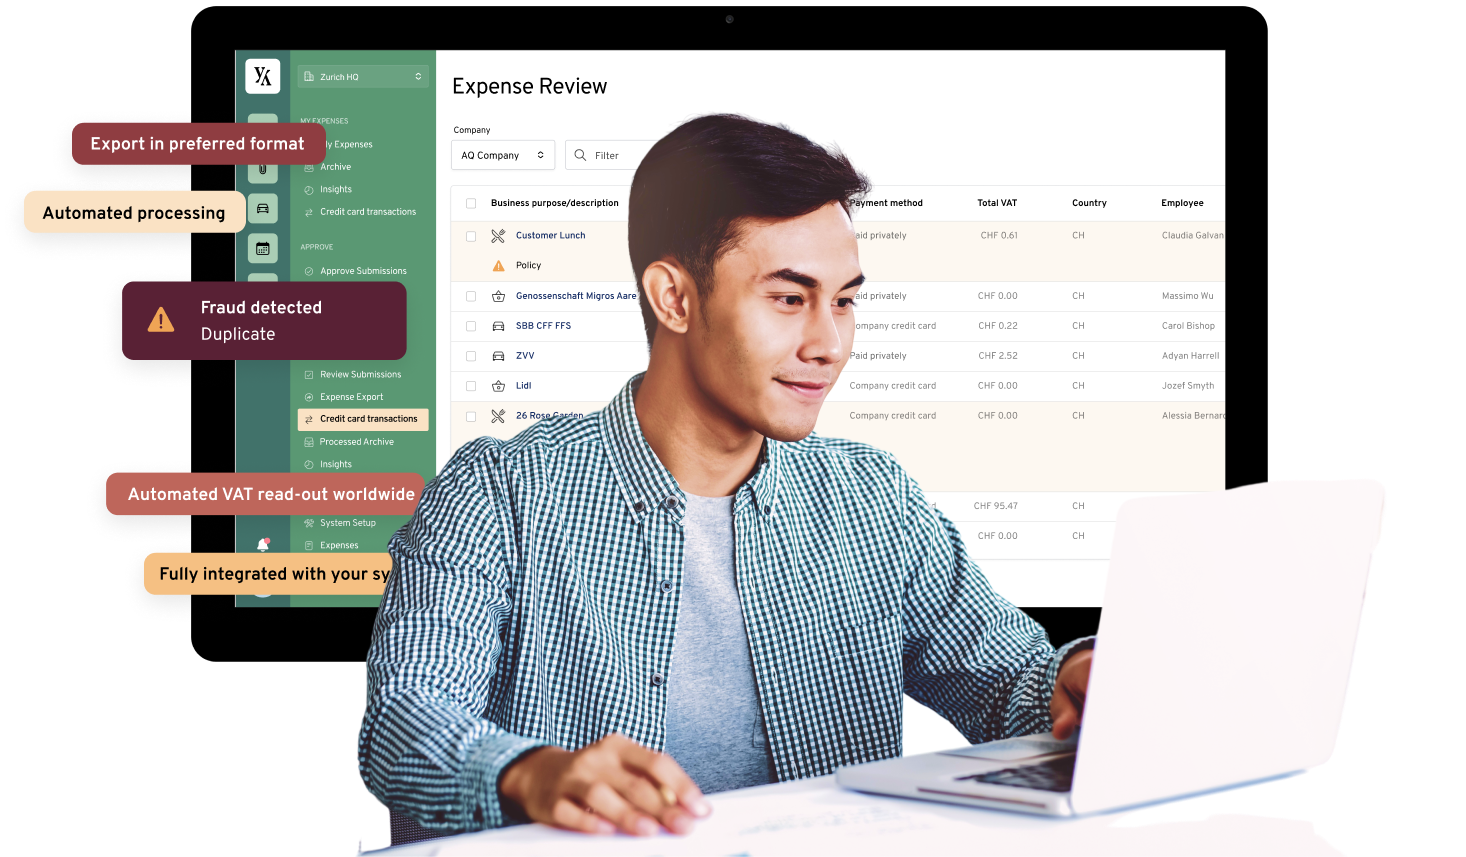 Image depicting accounting